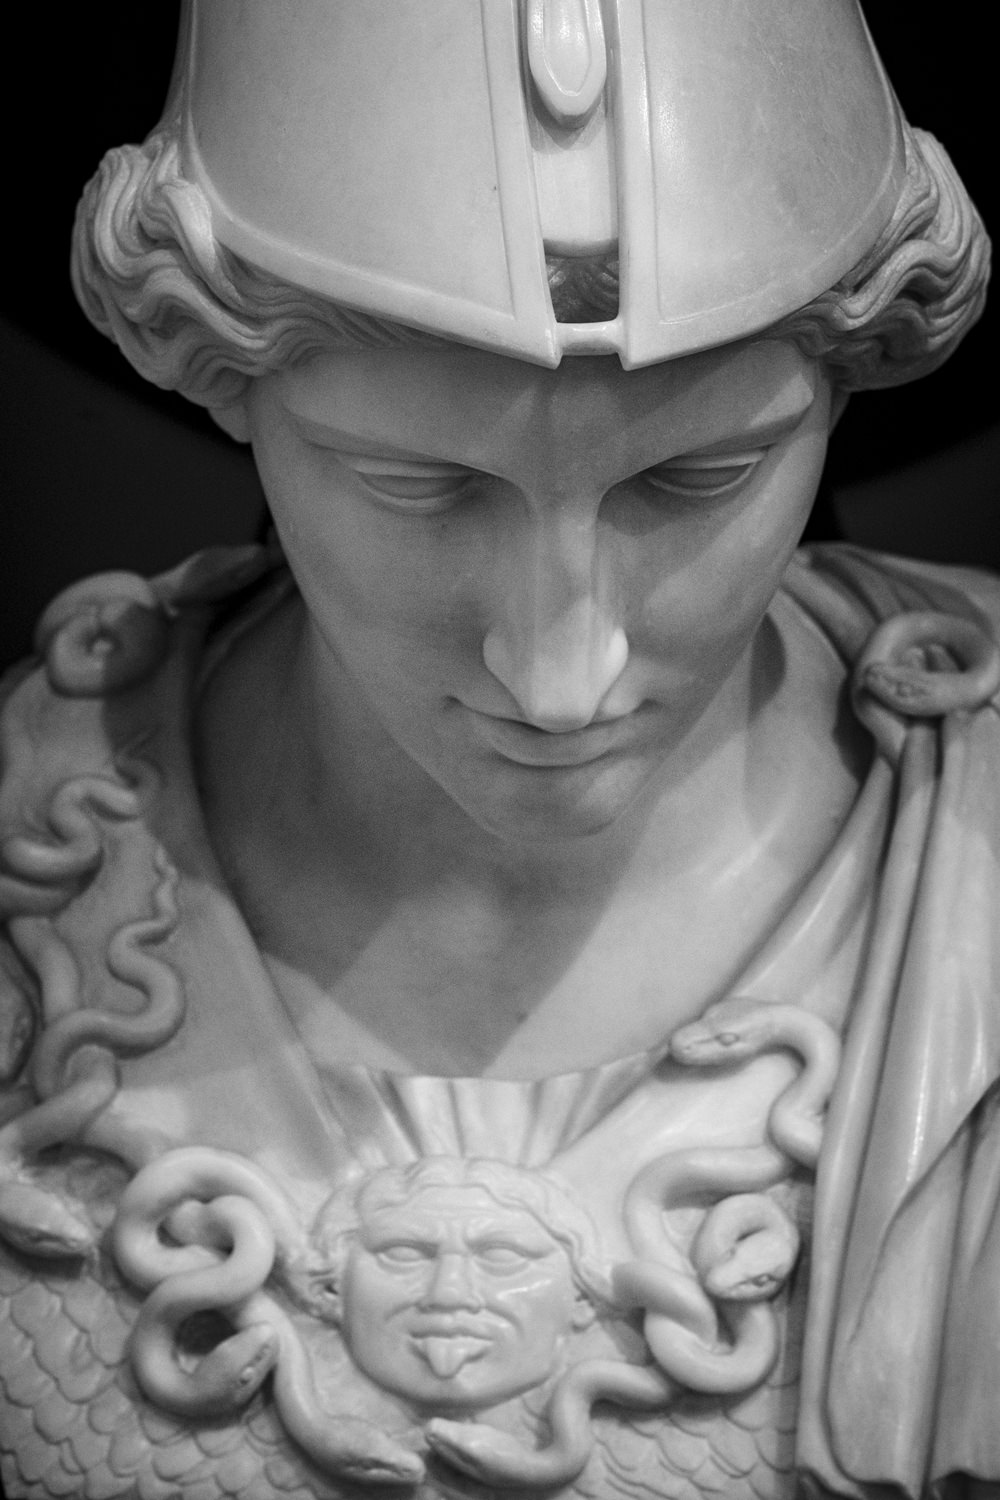 a marble statue of the goddess athena